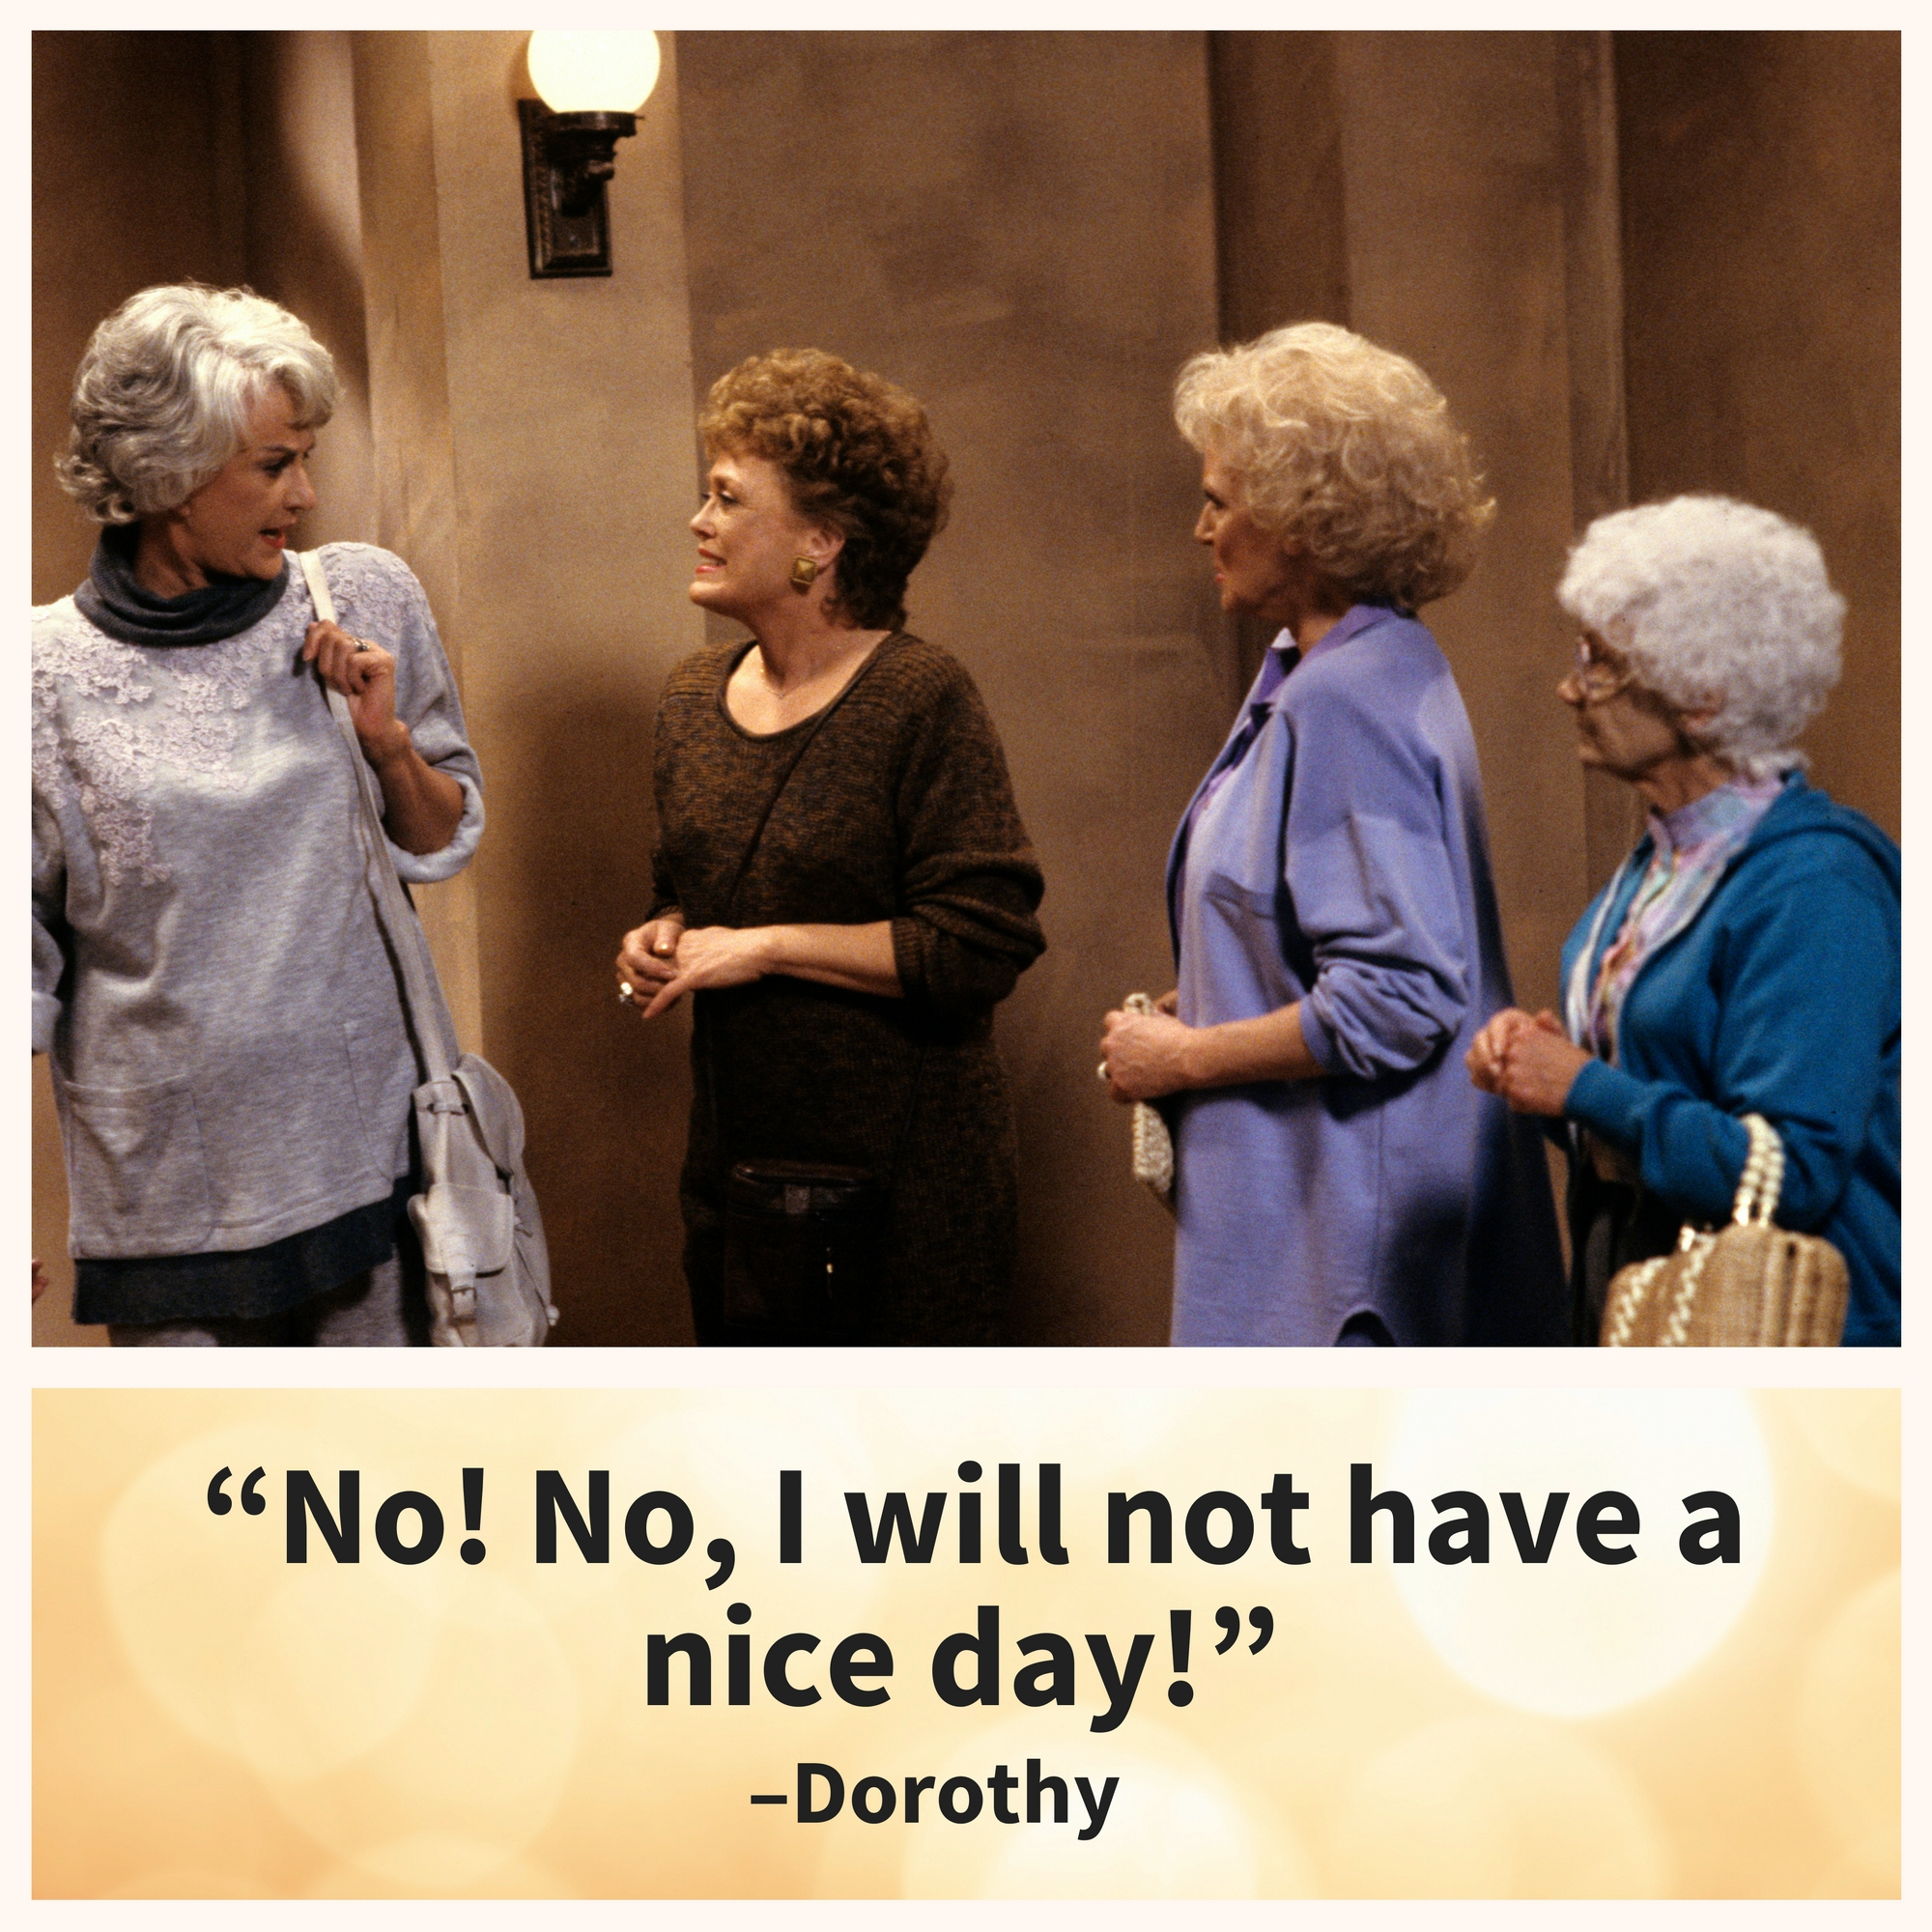 Dorothy, passionately rejecting colloquialisms.